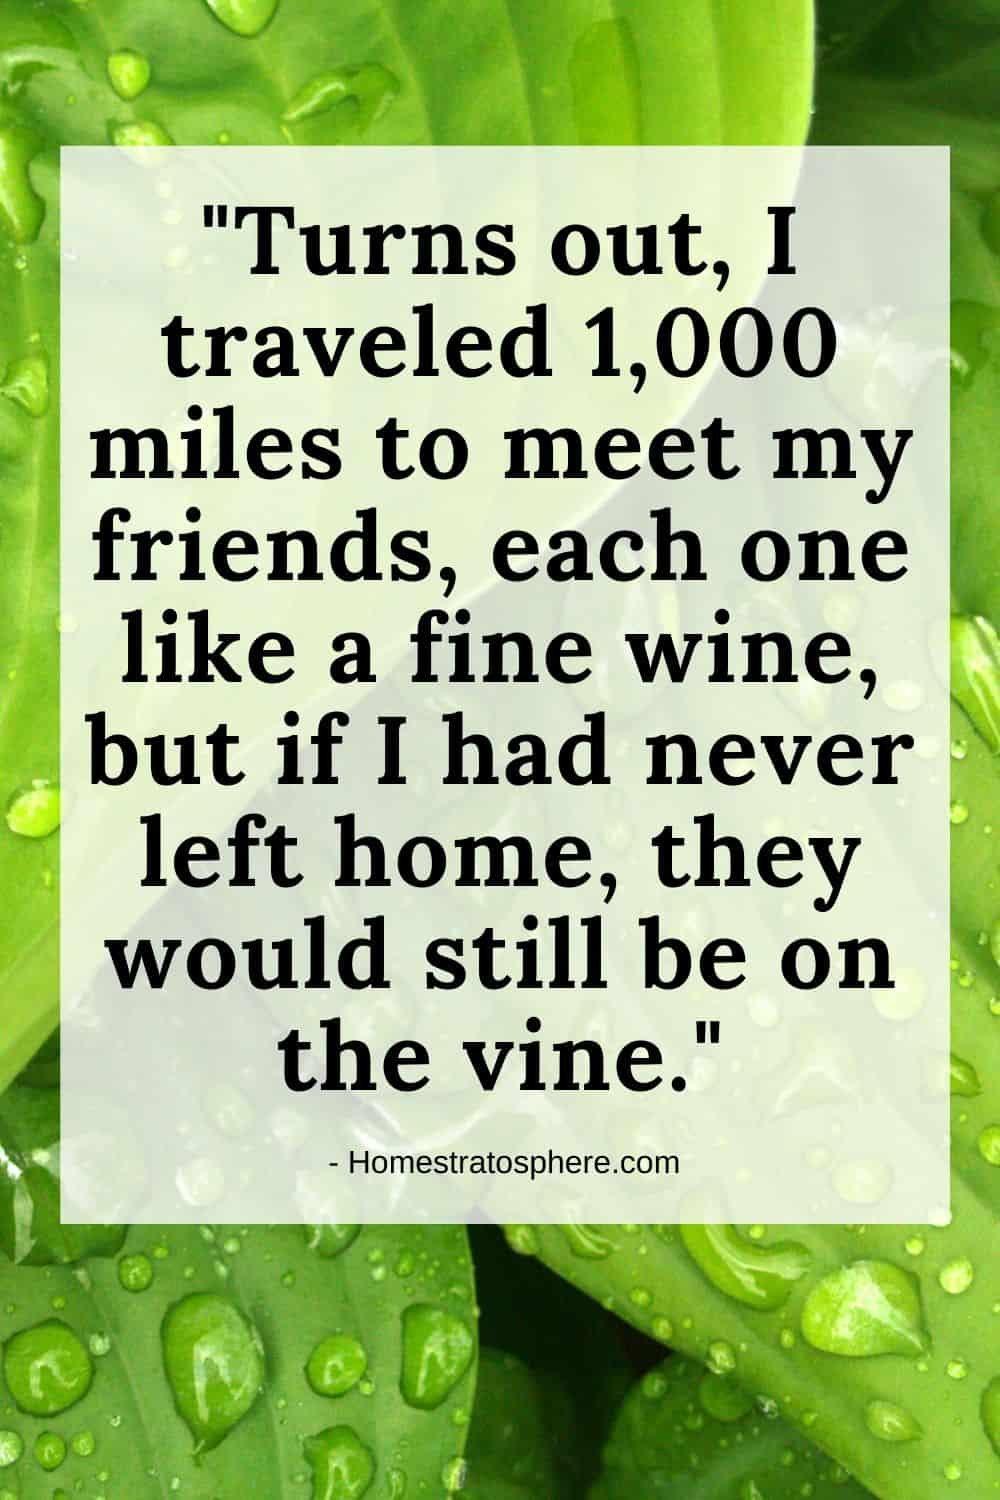 """Turns out, I traveled 1,000 miles to meet my friends, each one like a fine wine, but if I had never left home, they would still be on the vine."""